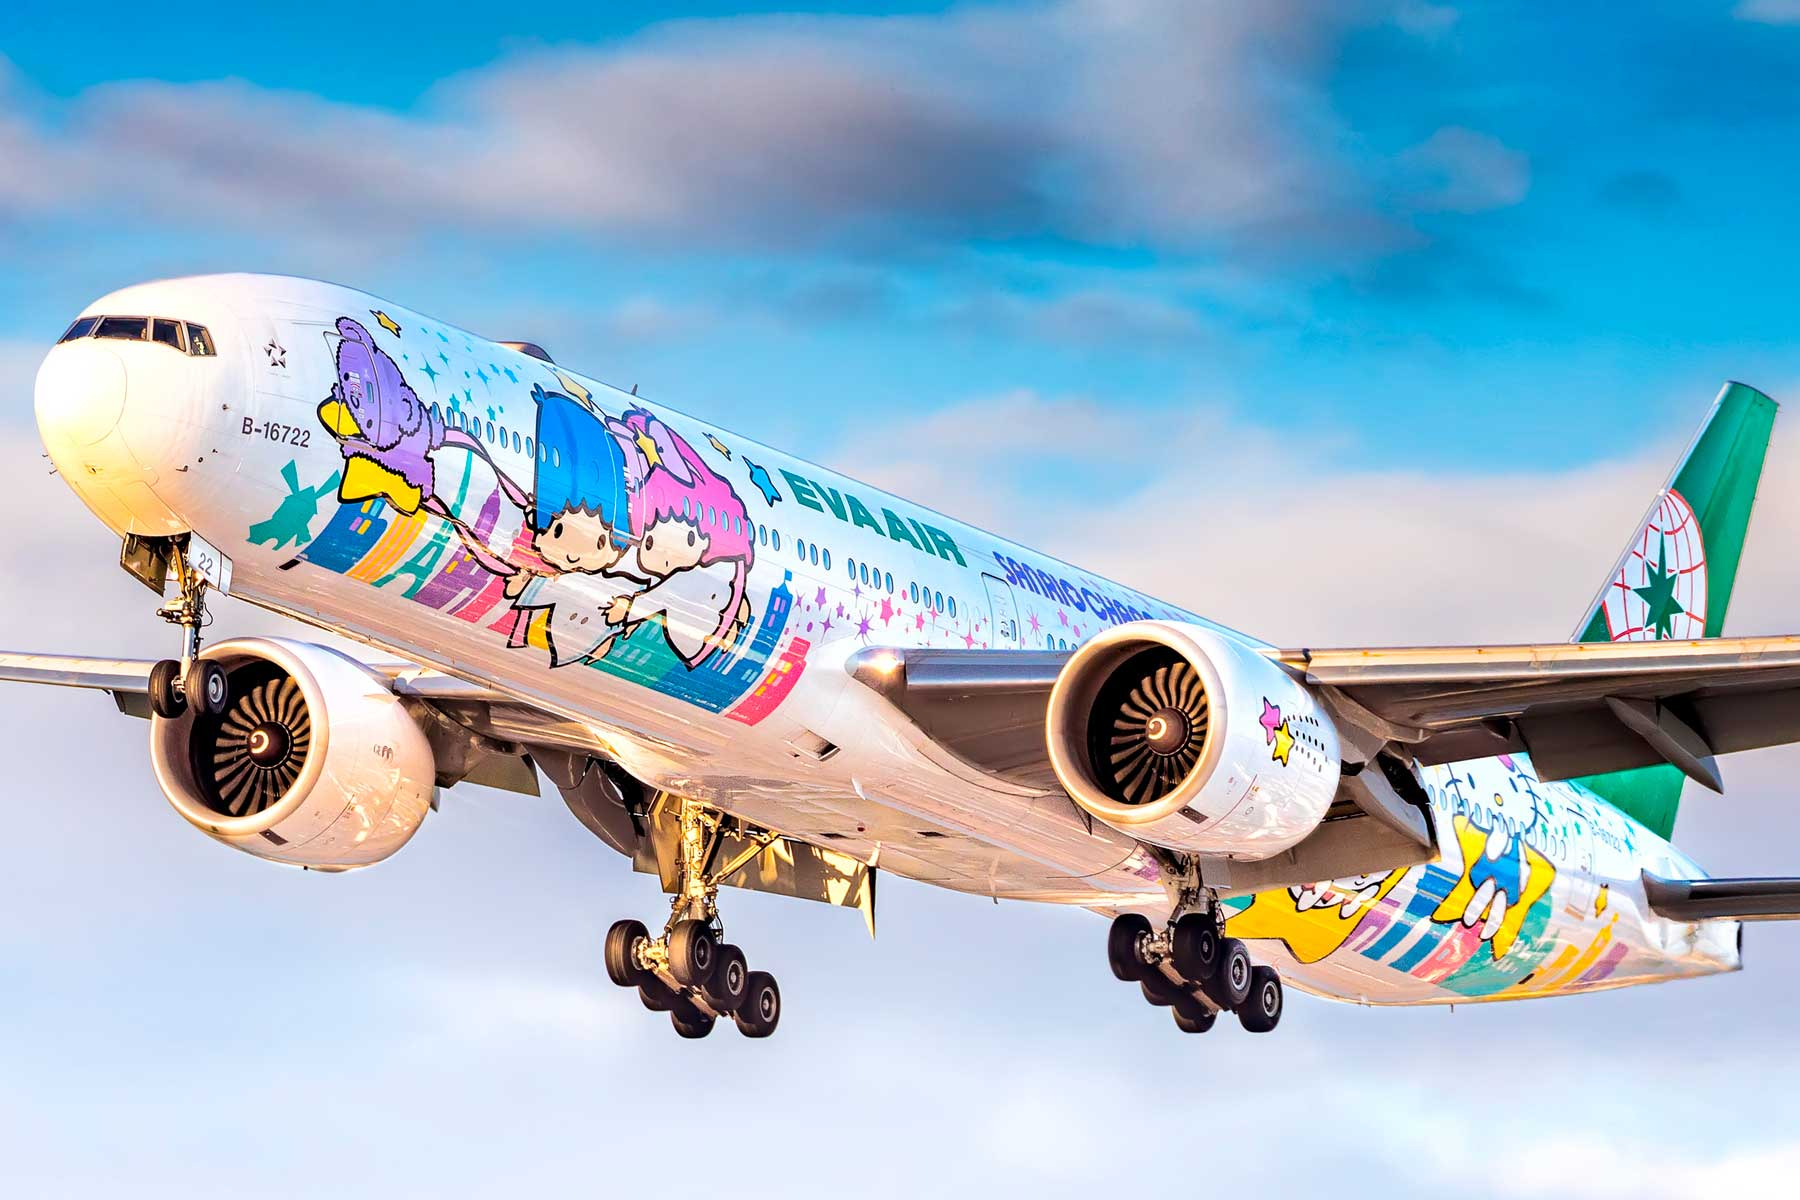 EVA Air Boeing 777-300ER Hello Kitty livery landing at Vancouver International Airport